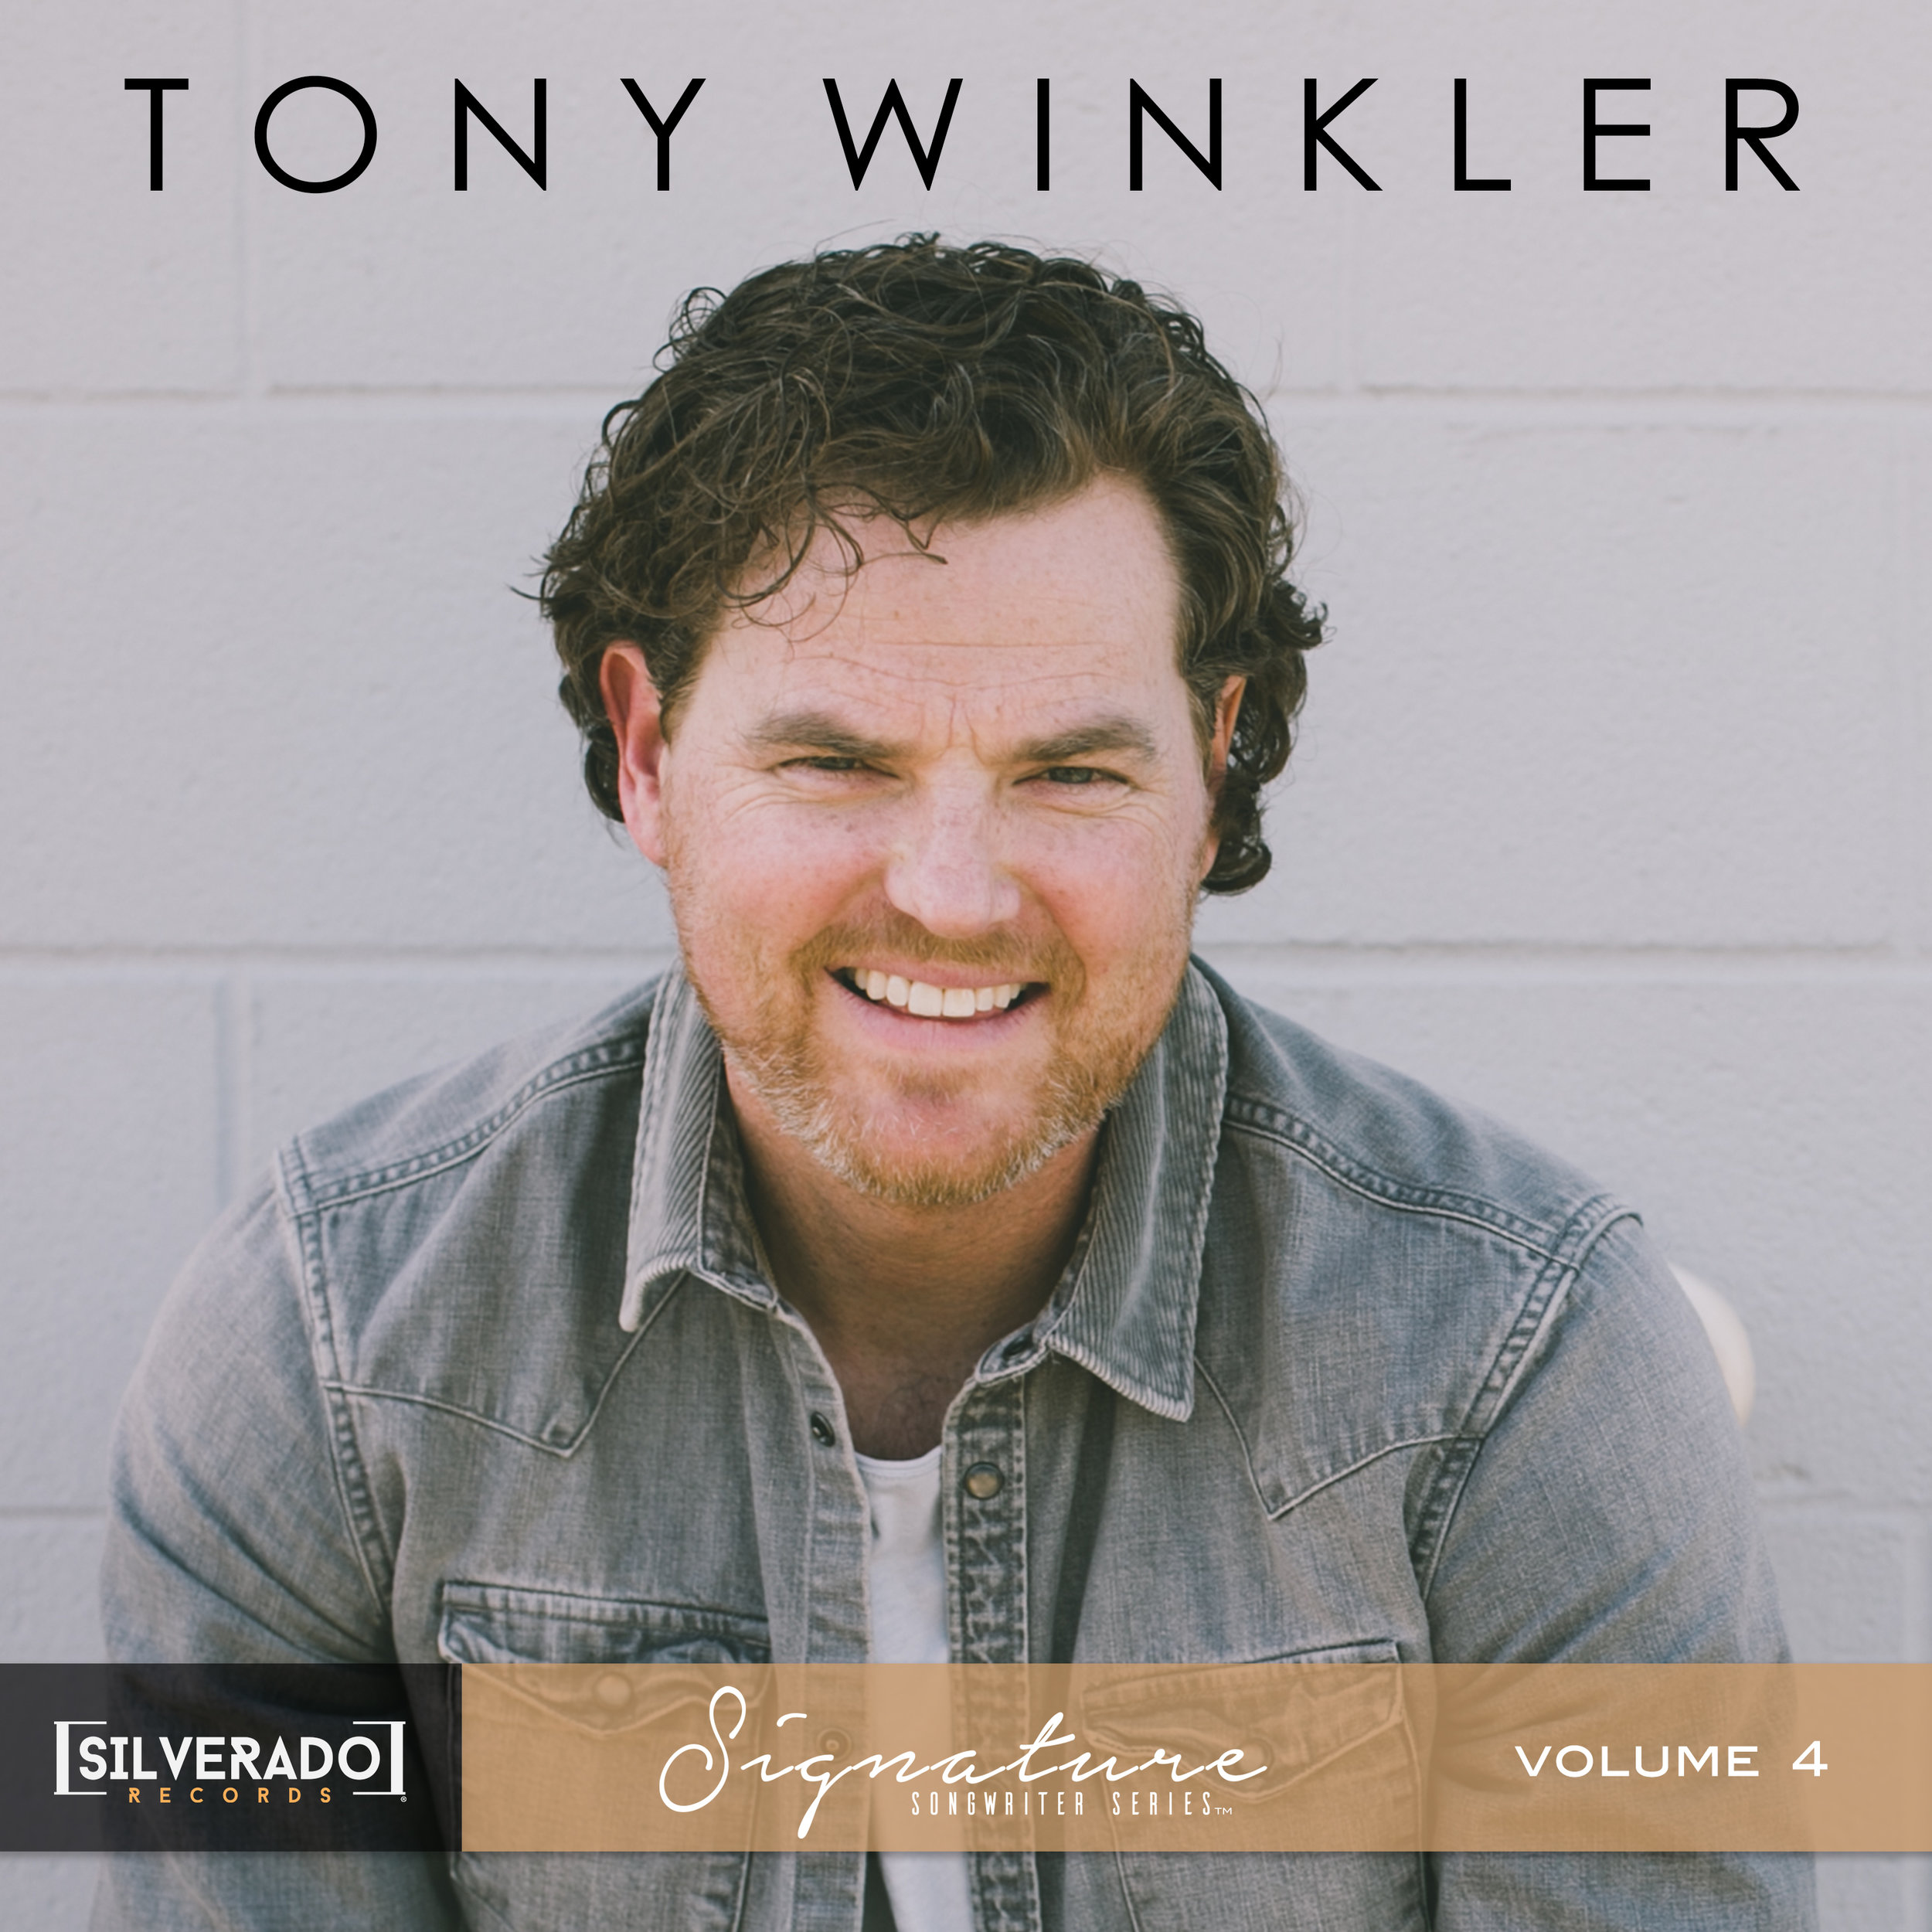 Tony Winkler - Silverado Signature Songwriter Series Vol. 4 - Produced by Smith Curry and Aaron CheslingSpotifyApple Music